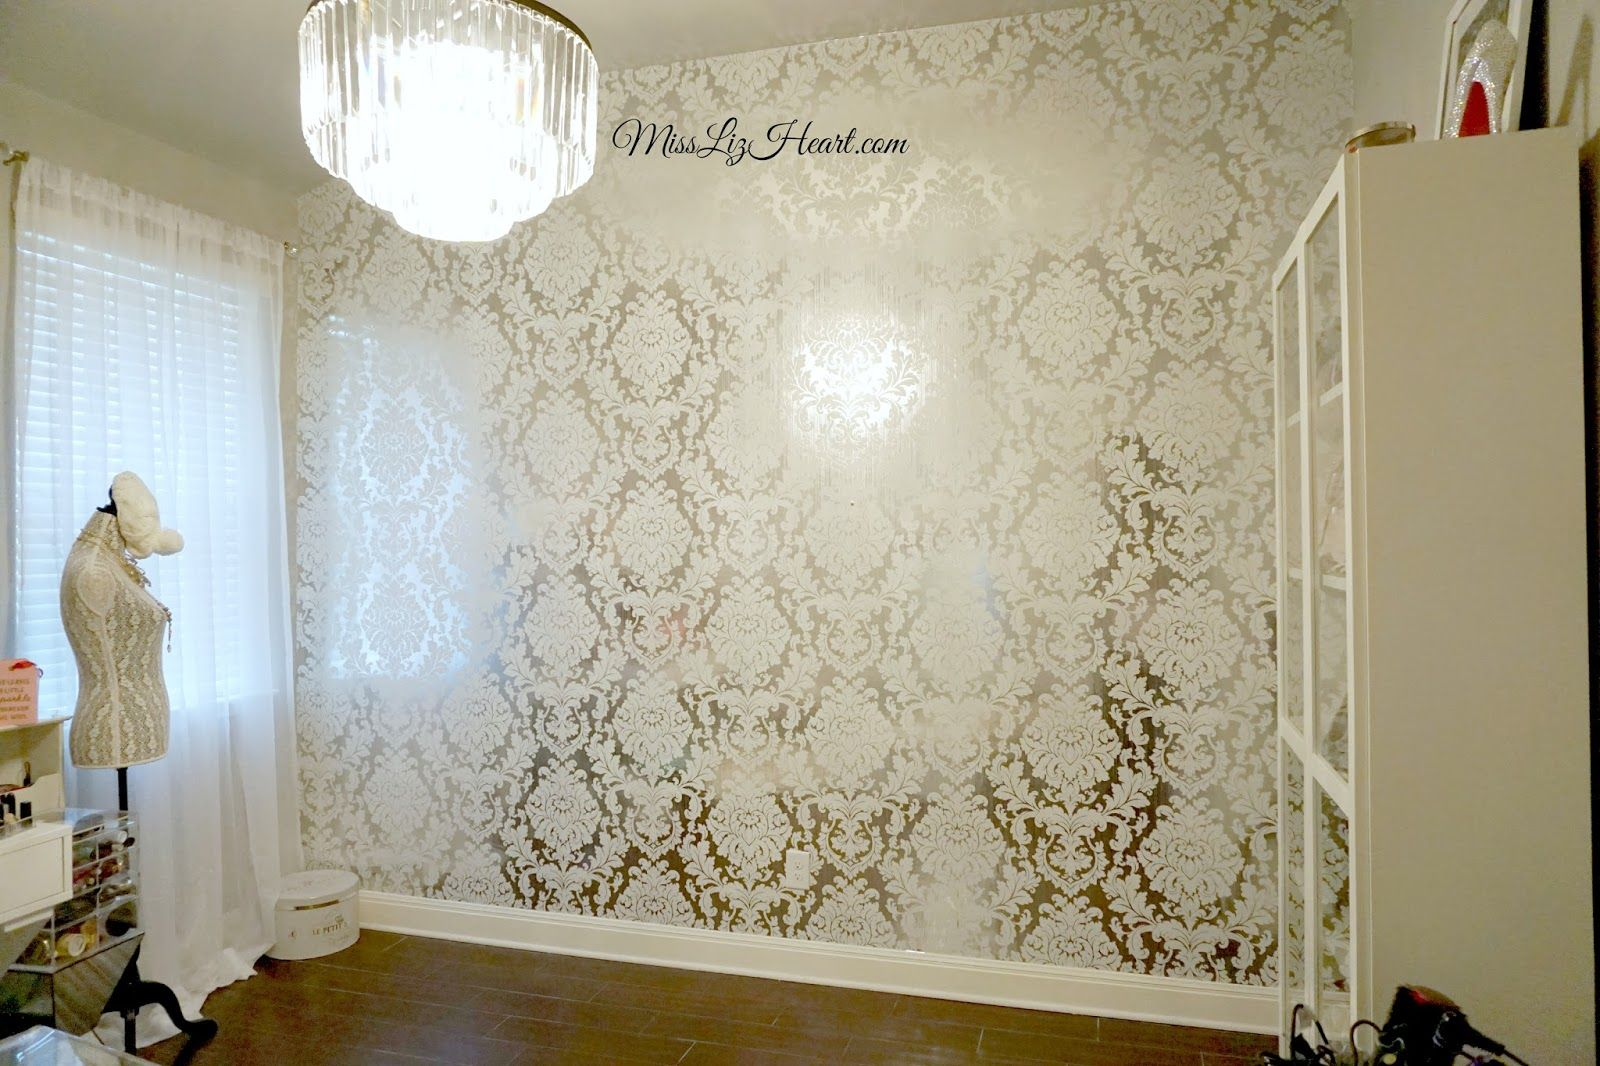 New Wallpaper! Makeup Room Update | White and silver wallpaper ...